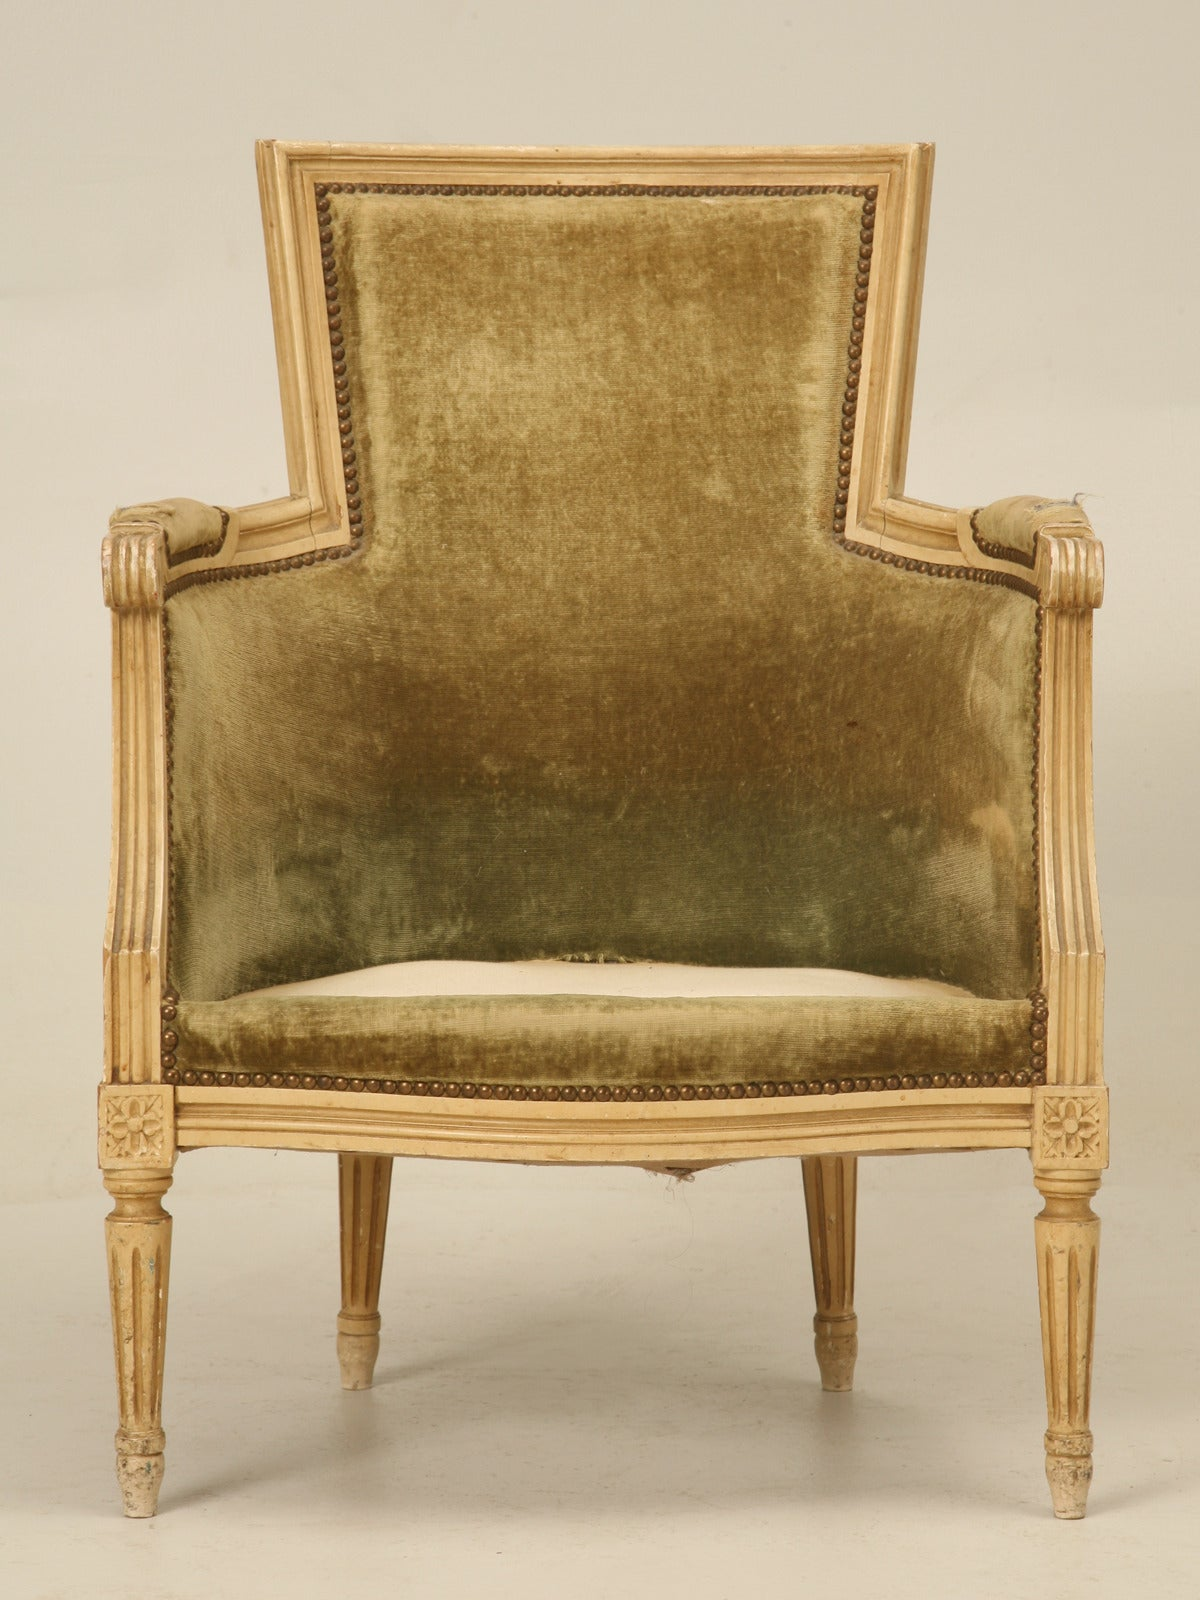 Louis XVI Style Bergere Chairs in Original Paint 8